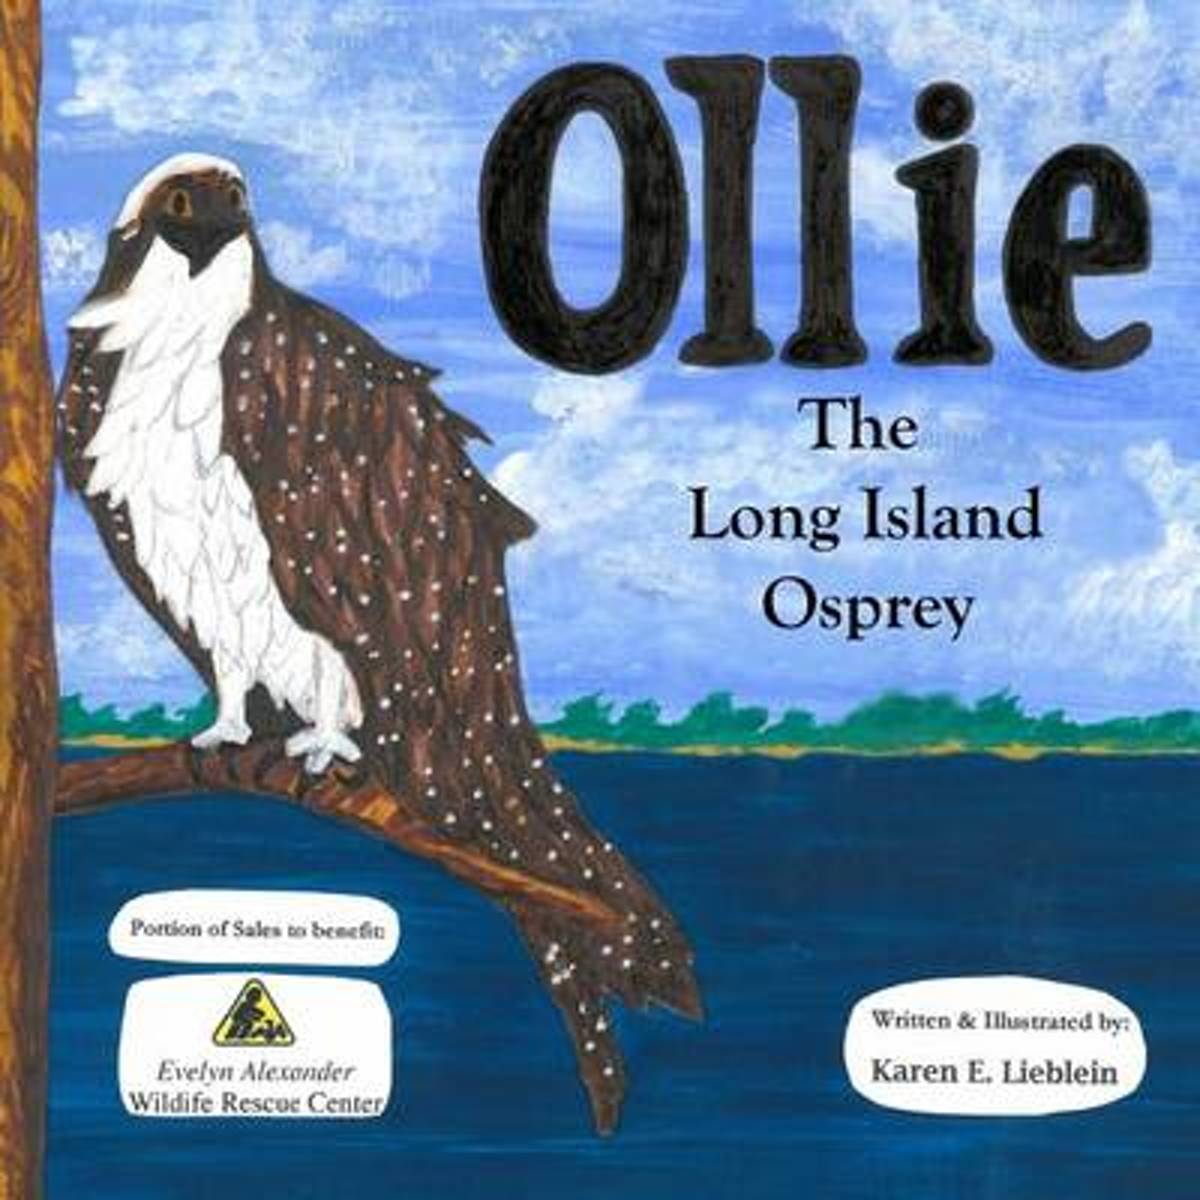 Ollie the Long Island Osprey